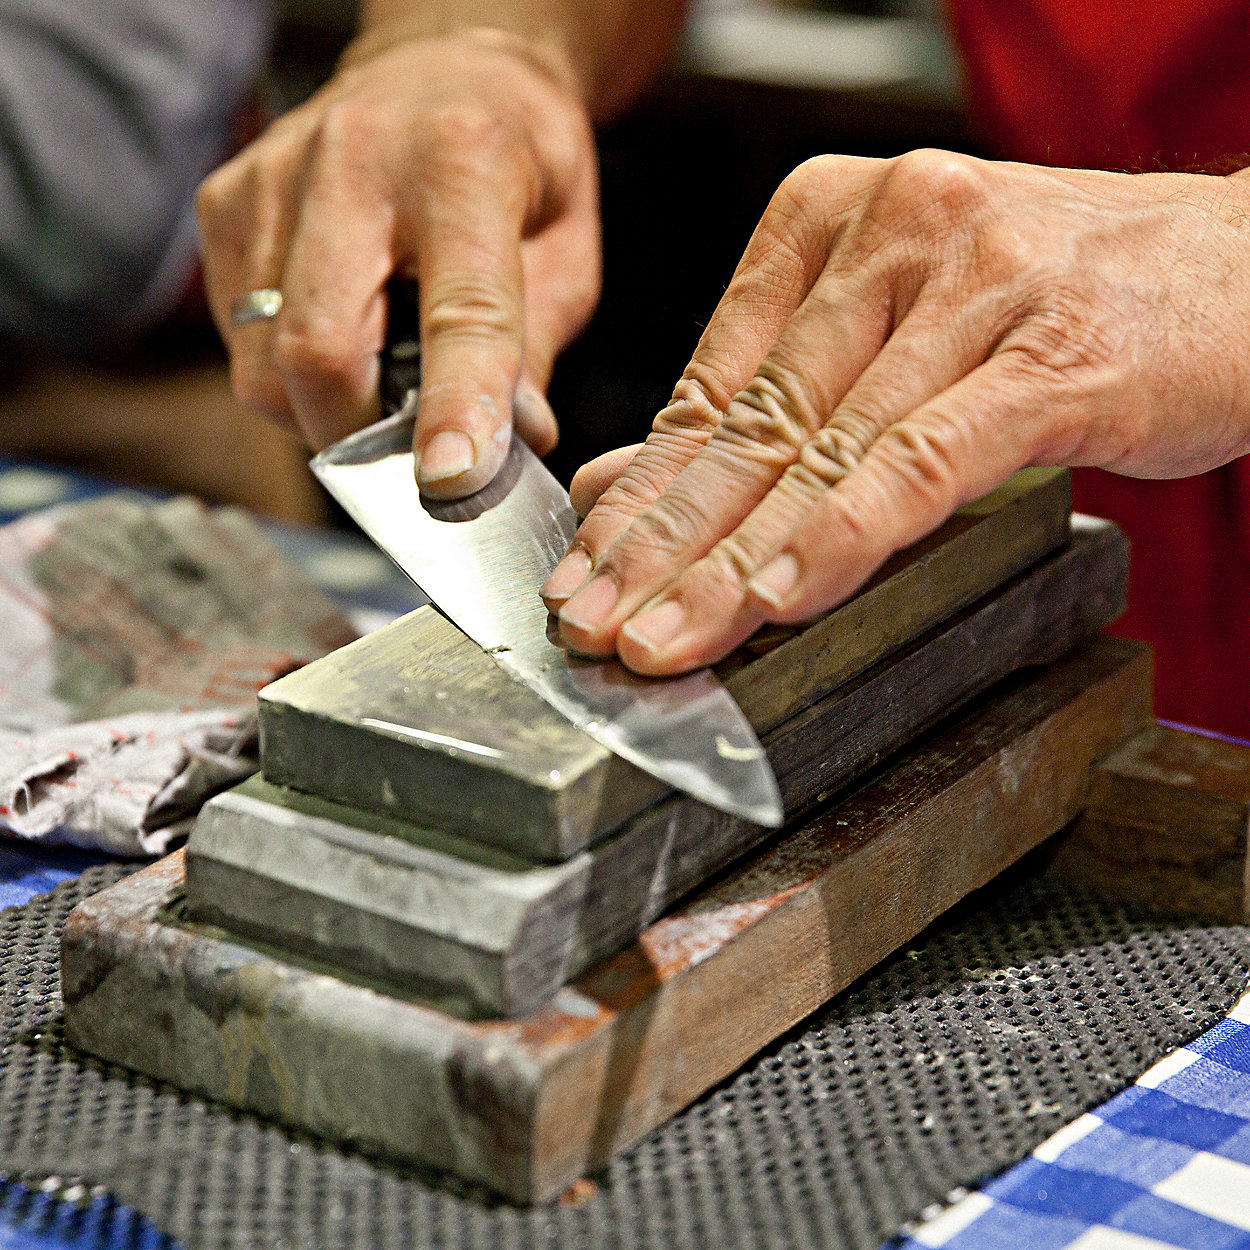 sharpening a kitchen knife on a whetstone